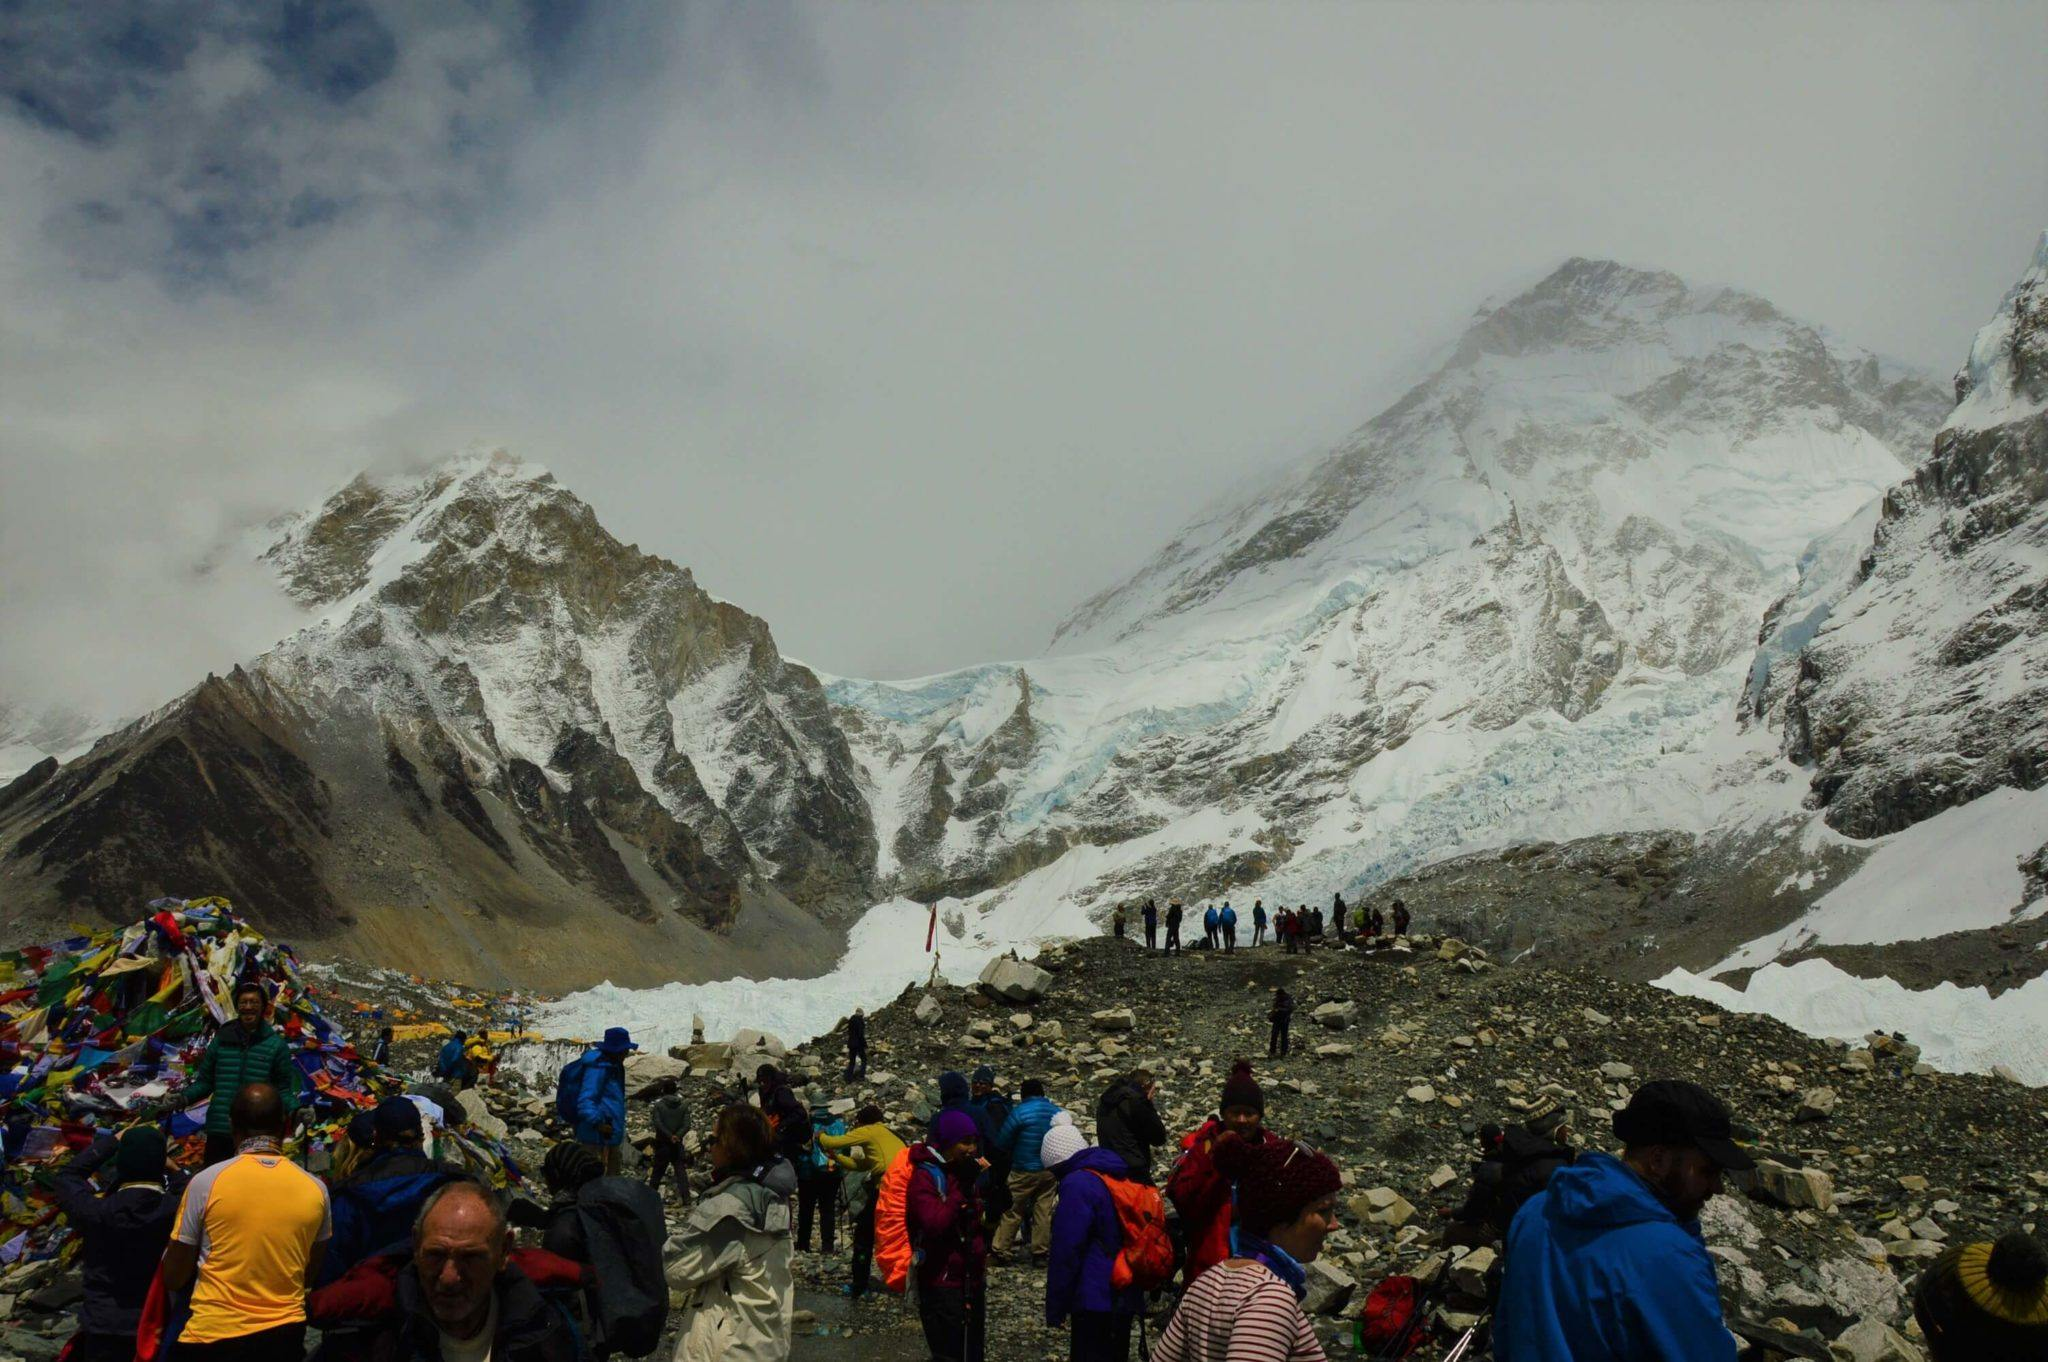 everest-base-camp with view of the icefall in the background